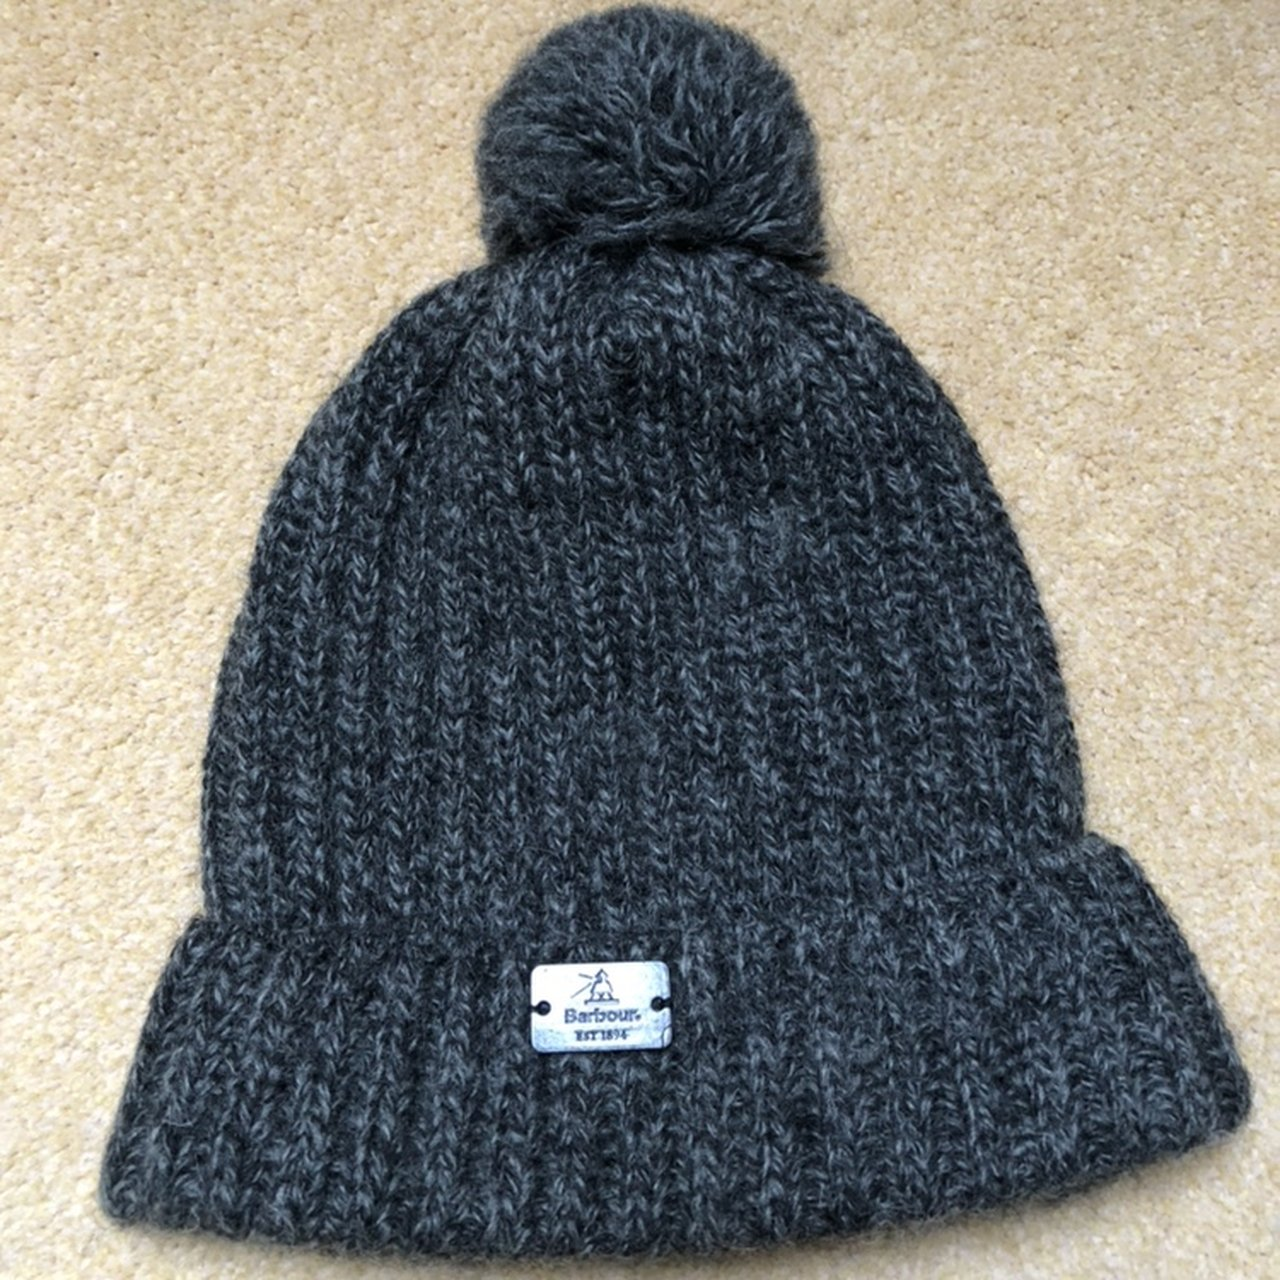 bfa83c89612 Barbour Wooly Bobble Hat Made in